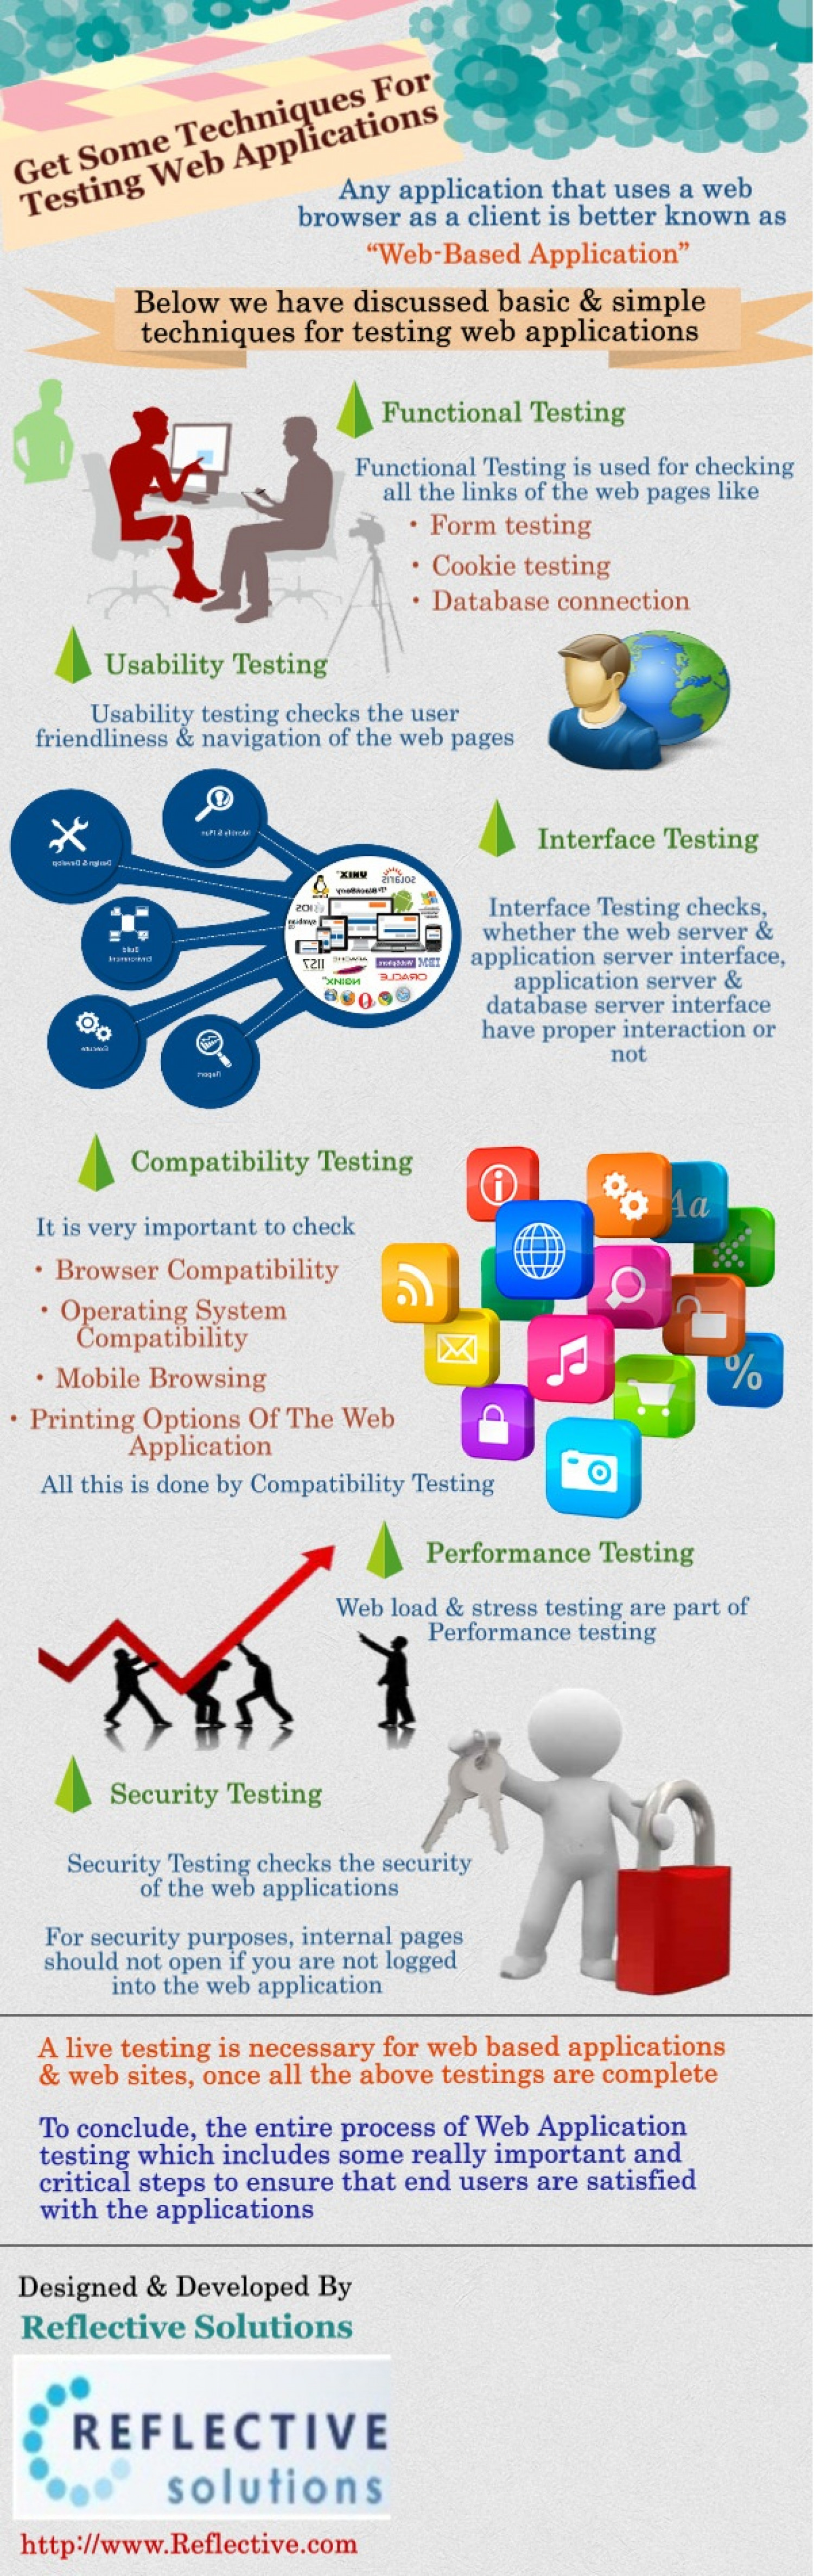 Get Some Techniques For Testing Web Applications Infographic